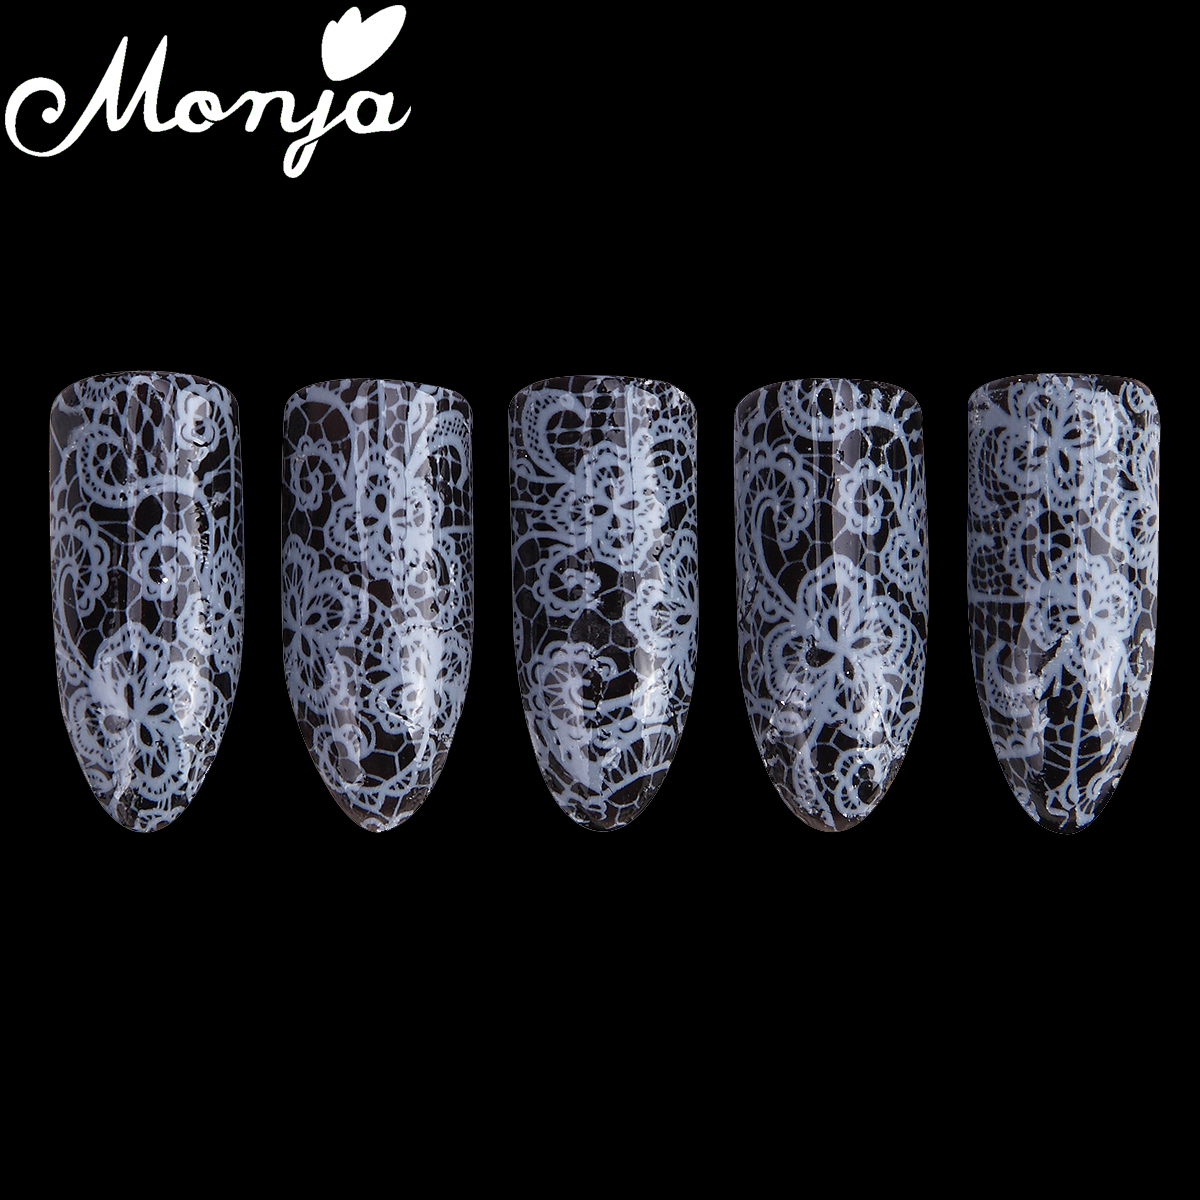 1 Roll White Nail Art Magic Flower Lace Image Starry Sky Foil Stickers Glue Transfer Fashion Decals Wraps 3D DIY Decoration 2